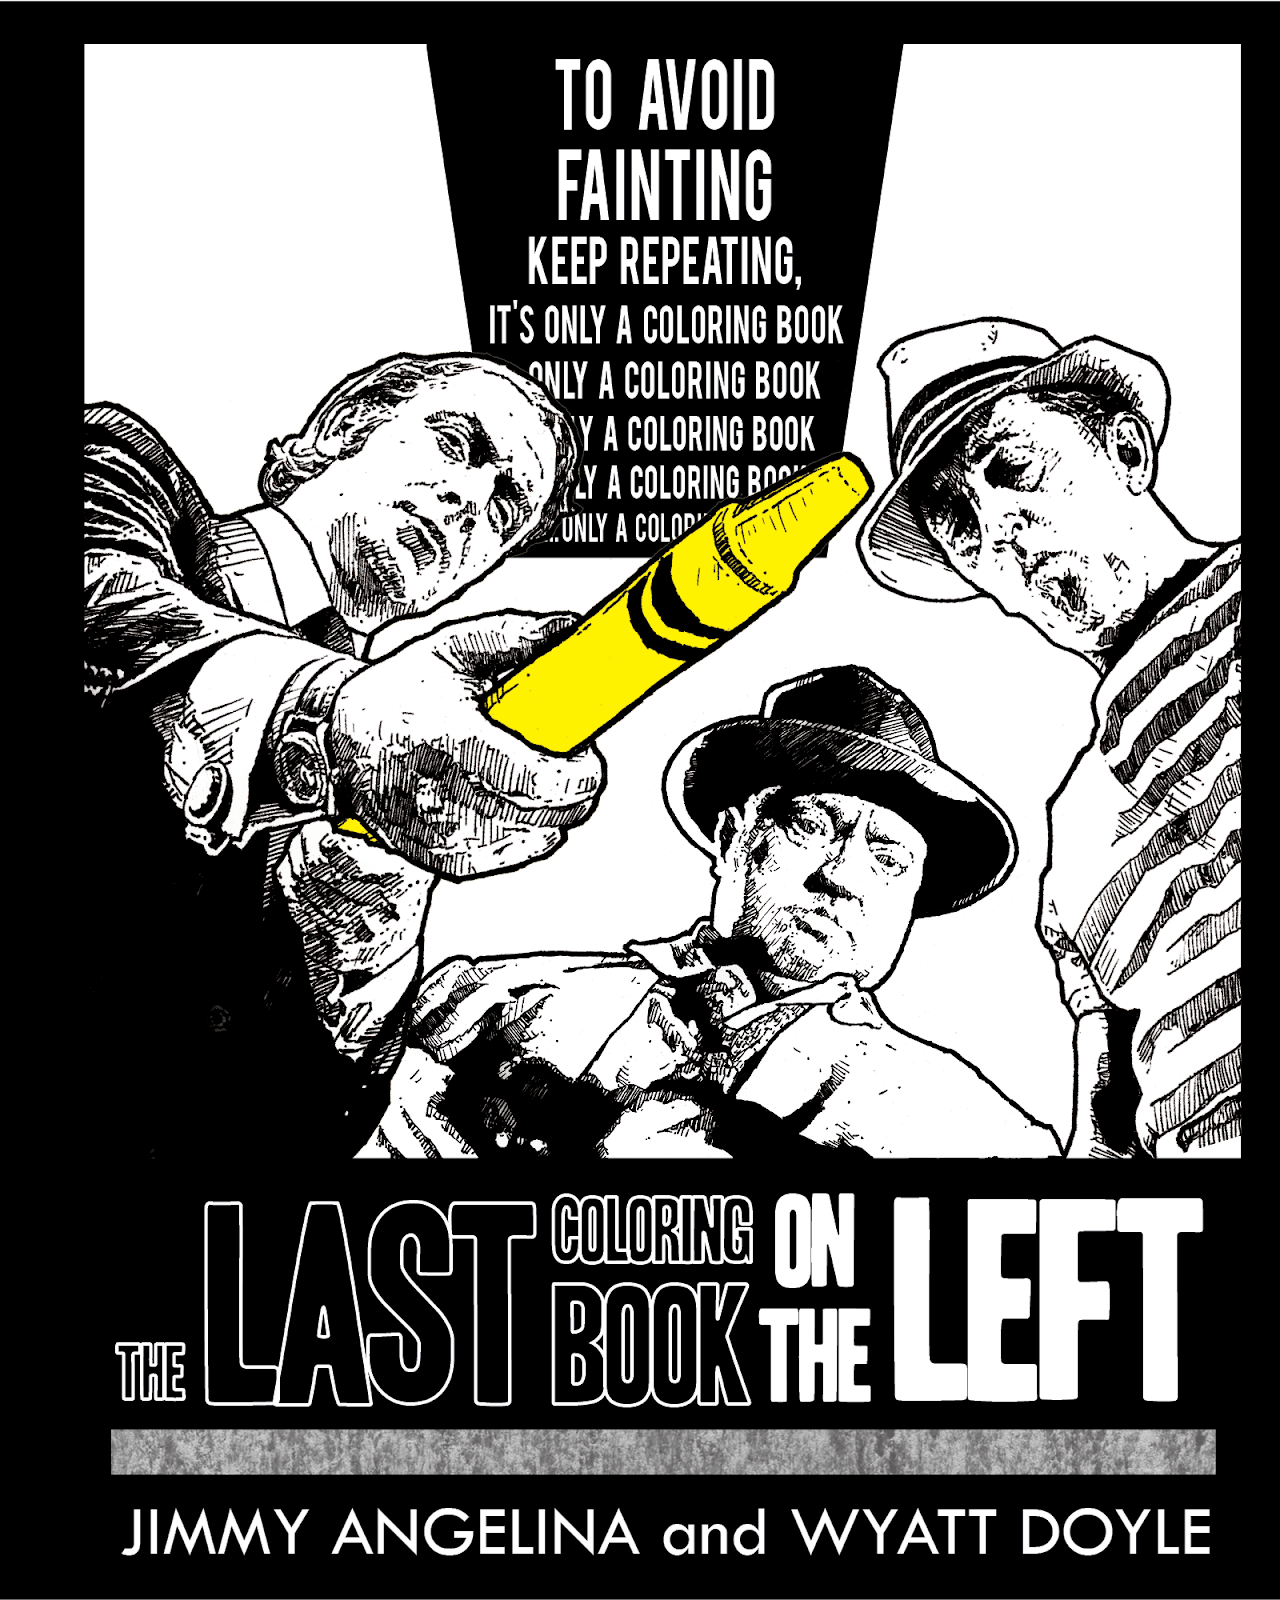 THE LAST COLORING BOOK ON THE LEFT / Jimmy Angelina and Wyatt Doyle